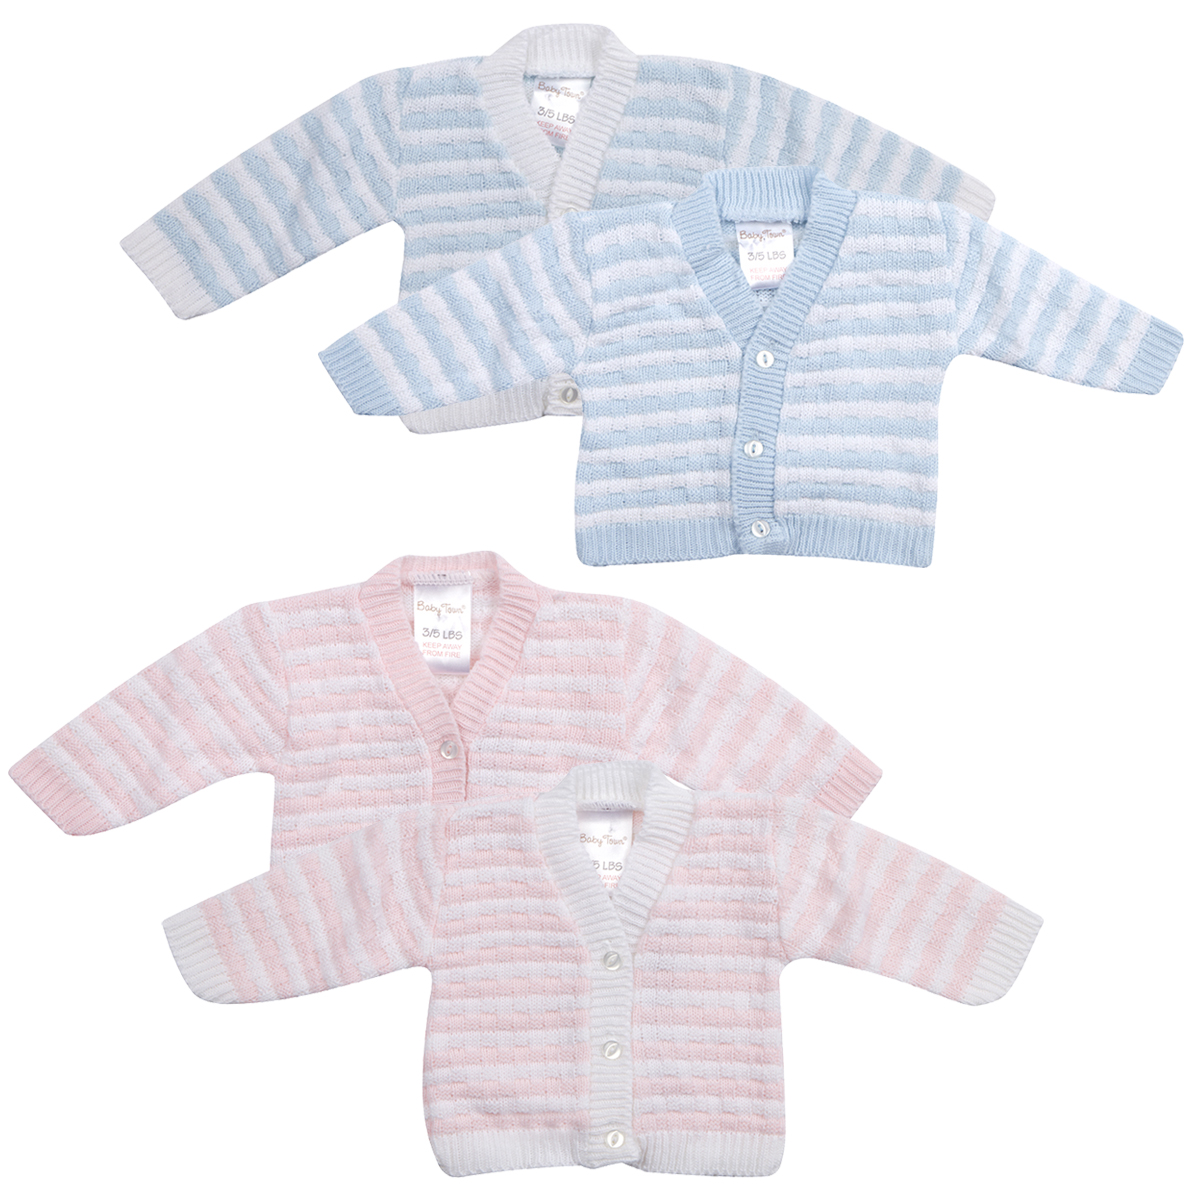 3fefcb2426ac Premature Baby Boy Girl Crochet Knitted Cardigan Button Up ...